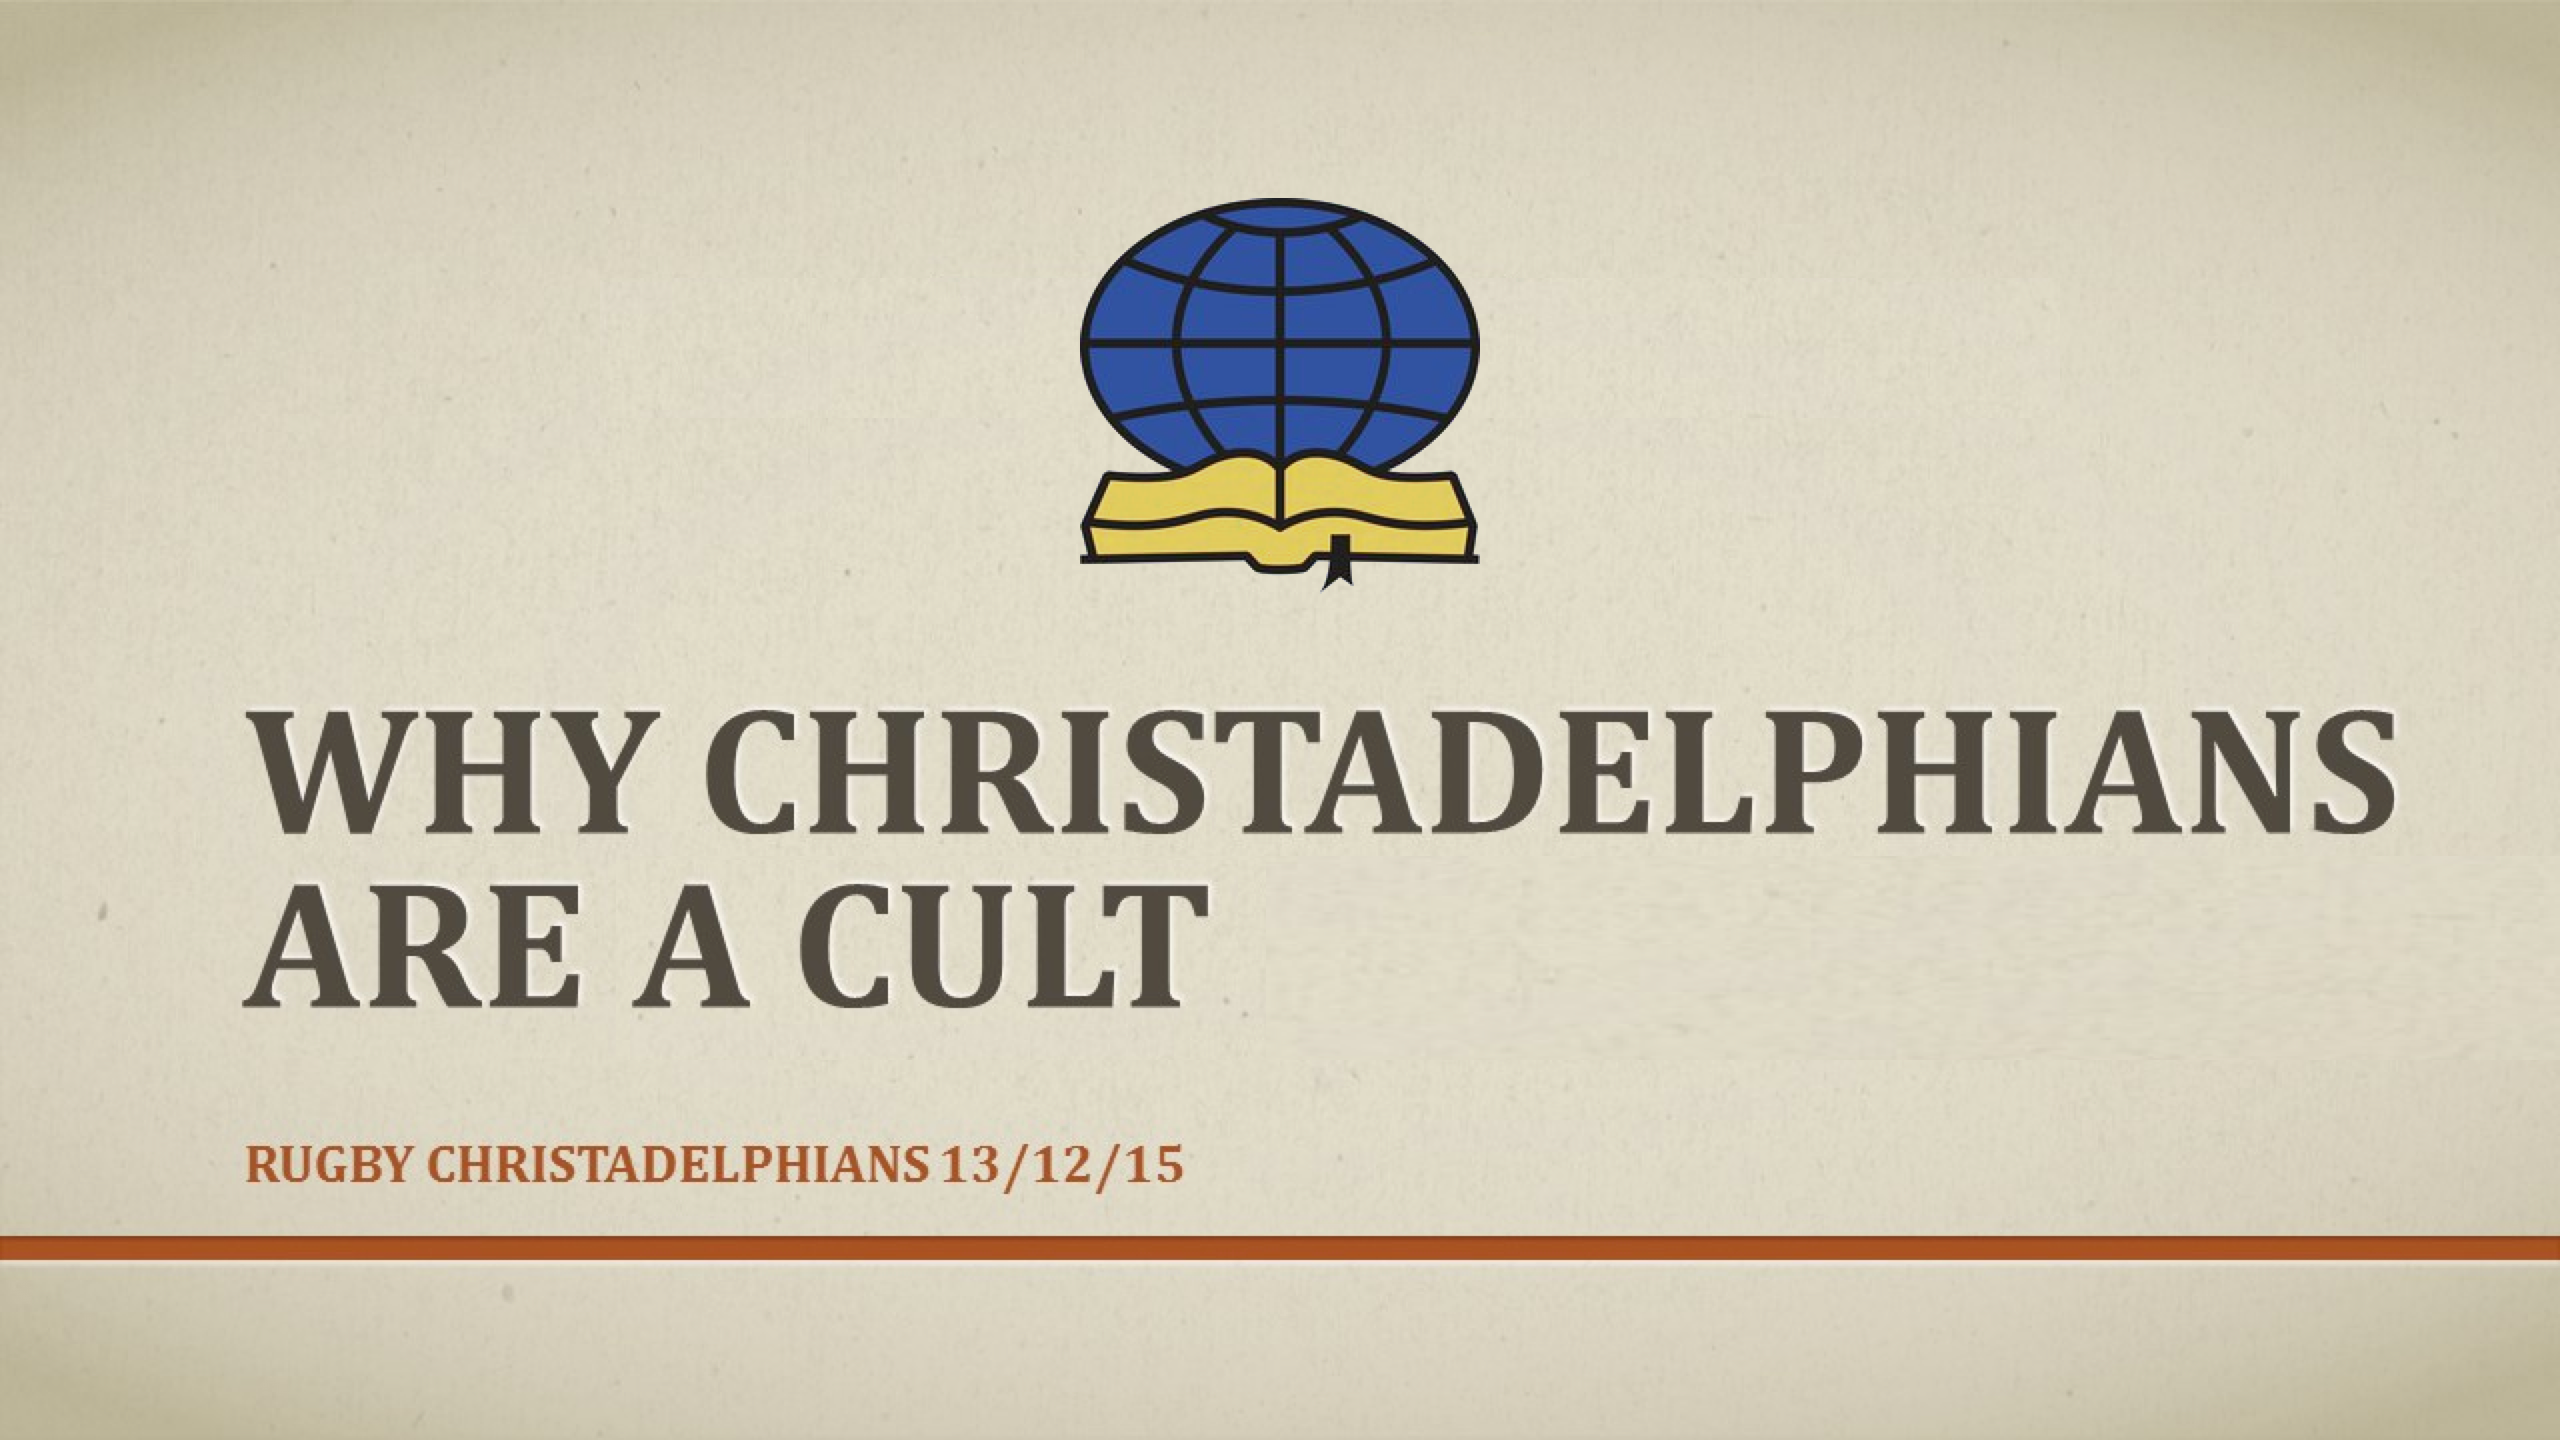 Why christadelphians are a cult